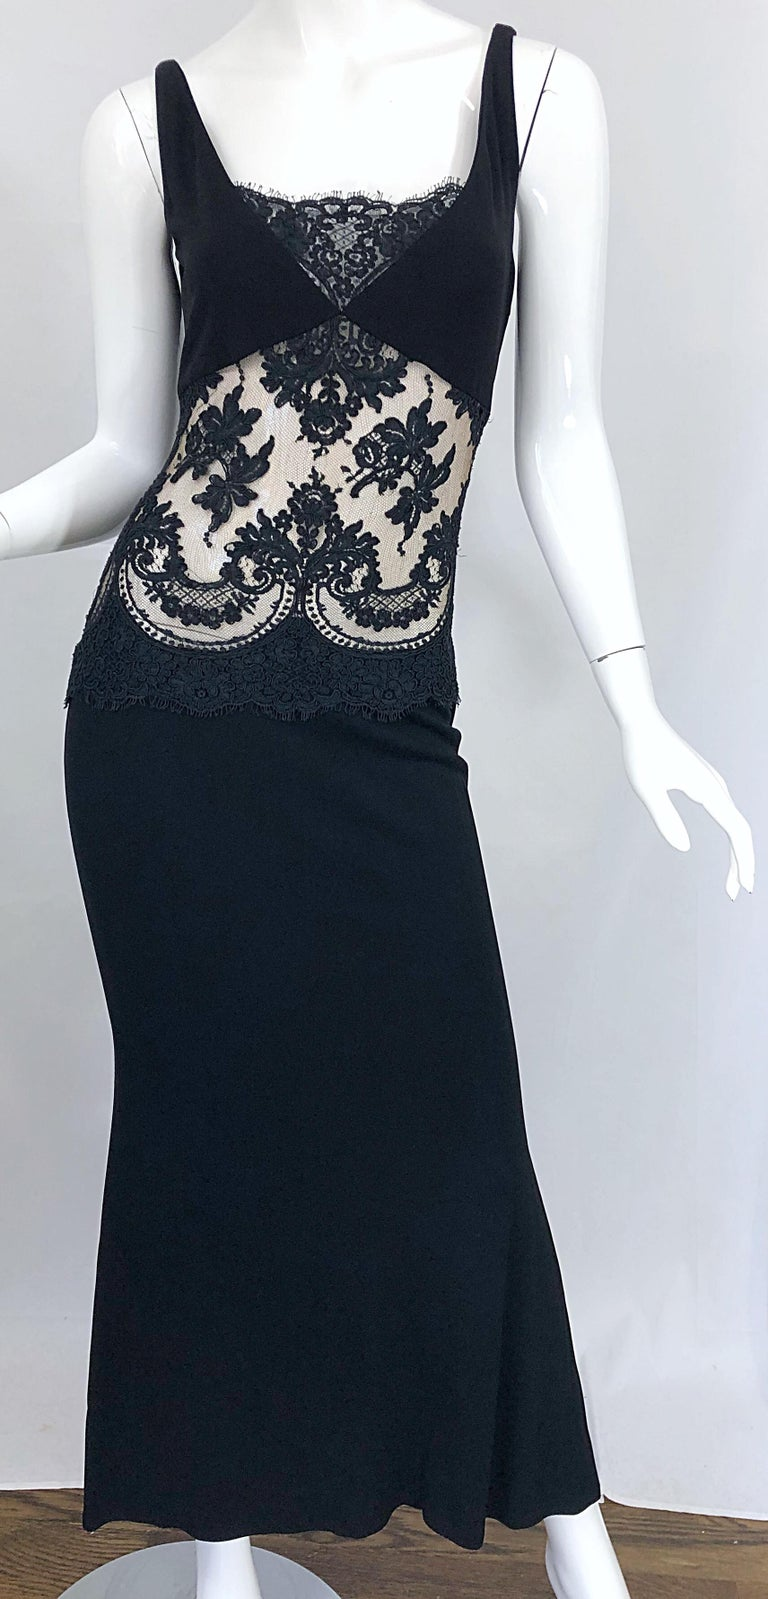 1990s Randolph Duke Black Sexy Lace Cut-Out Sleeveless Vintage 90s Evening Gown For Sale 2